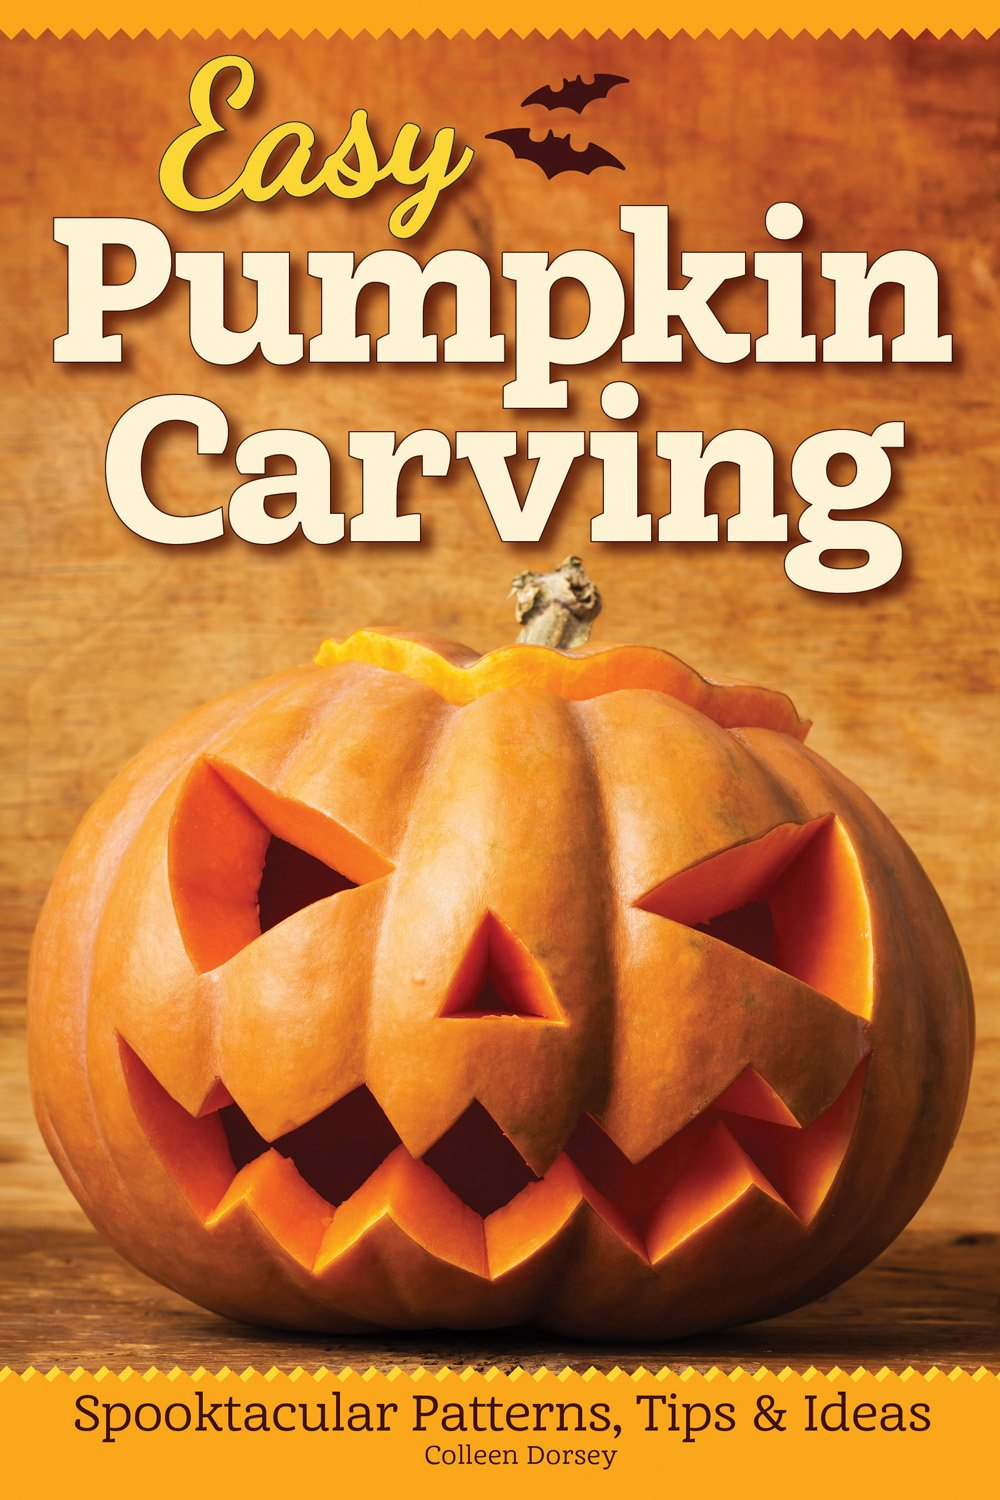 easy pumpkin carving spooktacular patterns, tips \u0026 ideas (foxfollow the author